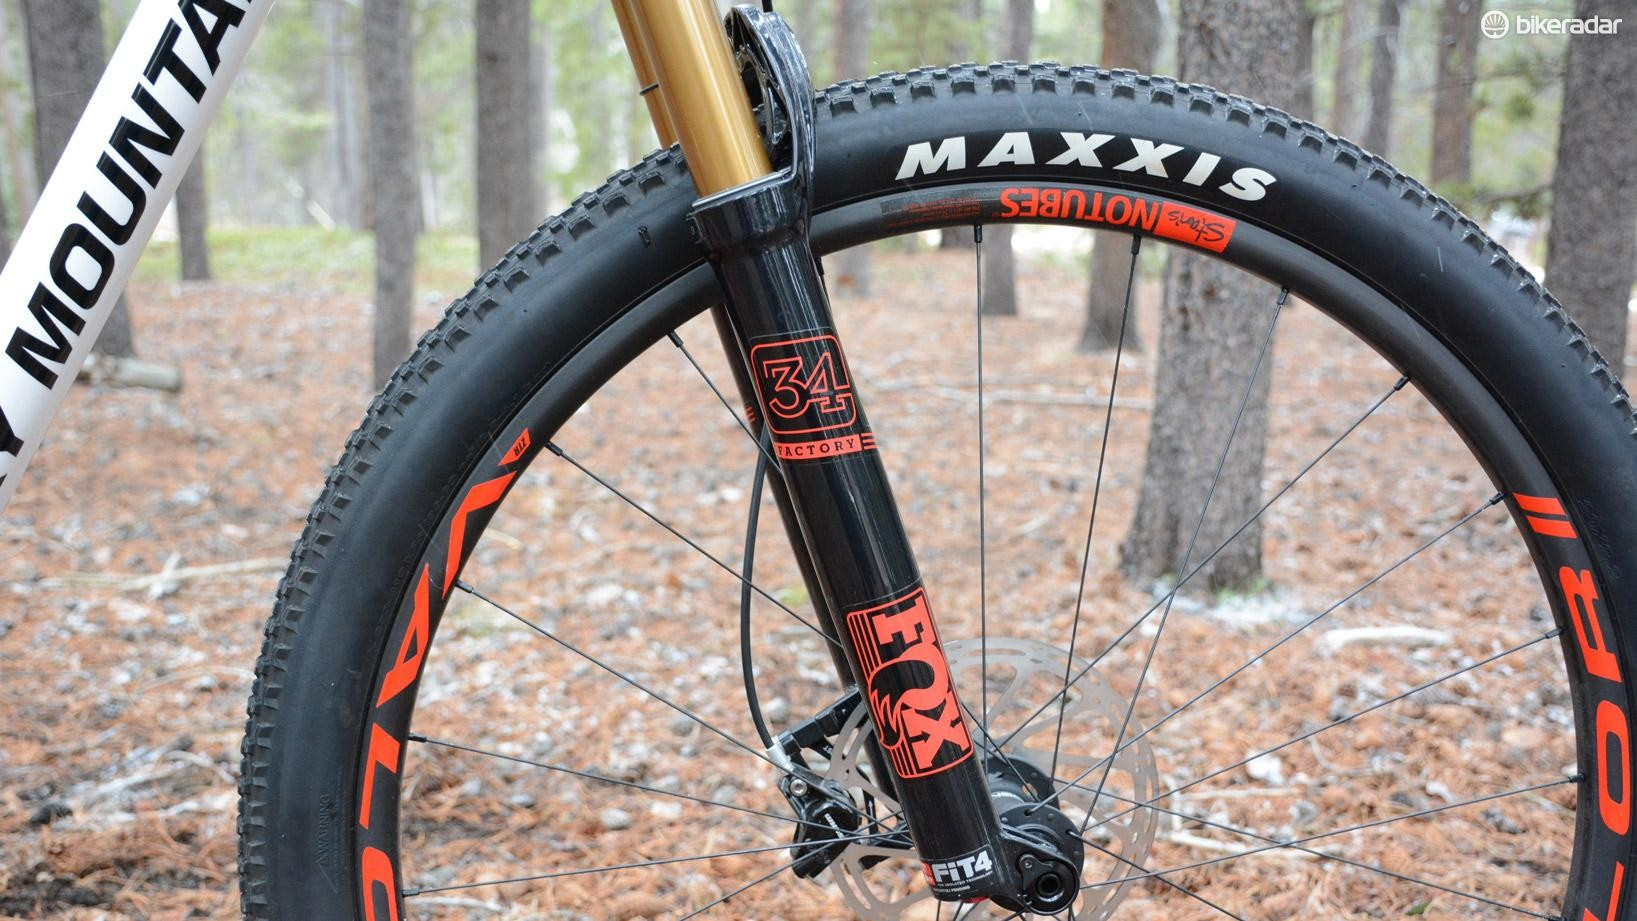 120mm leads the way, courtesy of a Fox 34 Float Factory fork